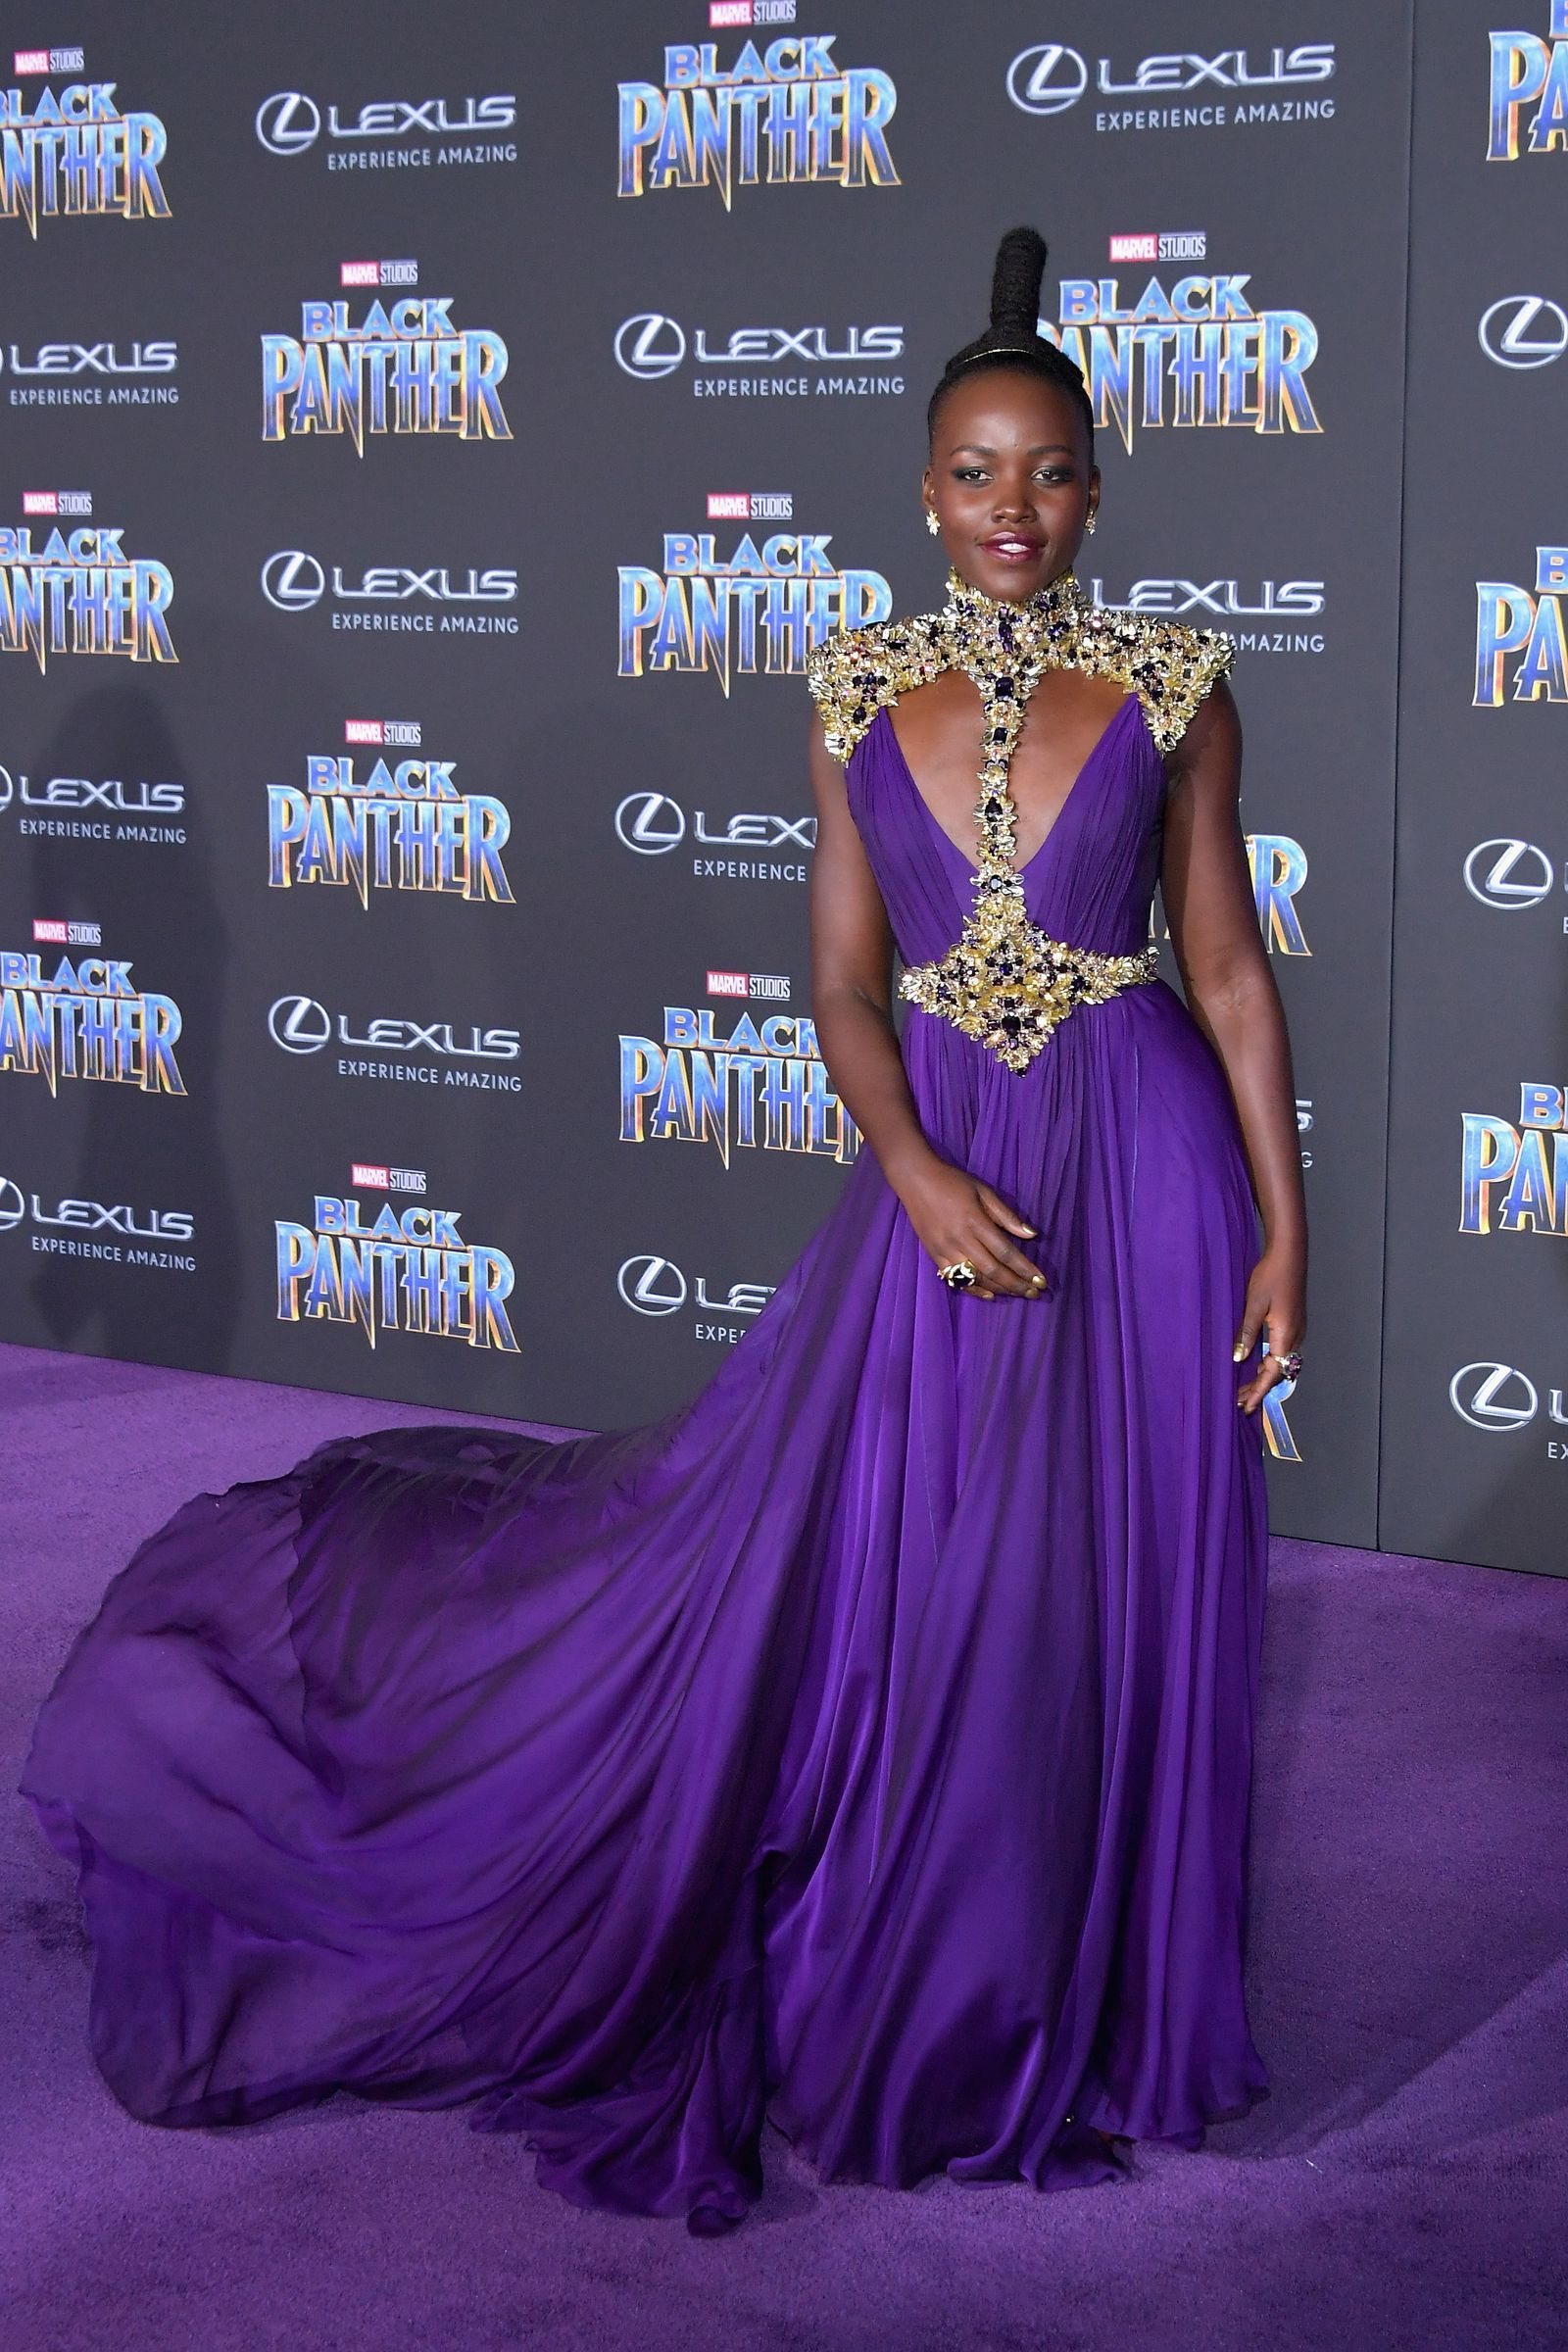 Everyone At The Black Panther Premiere Looked Like Royalty